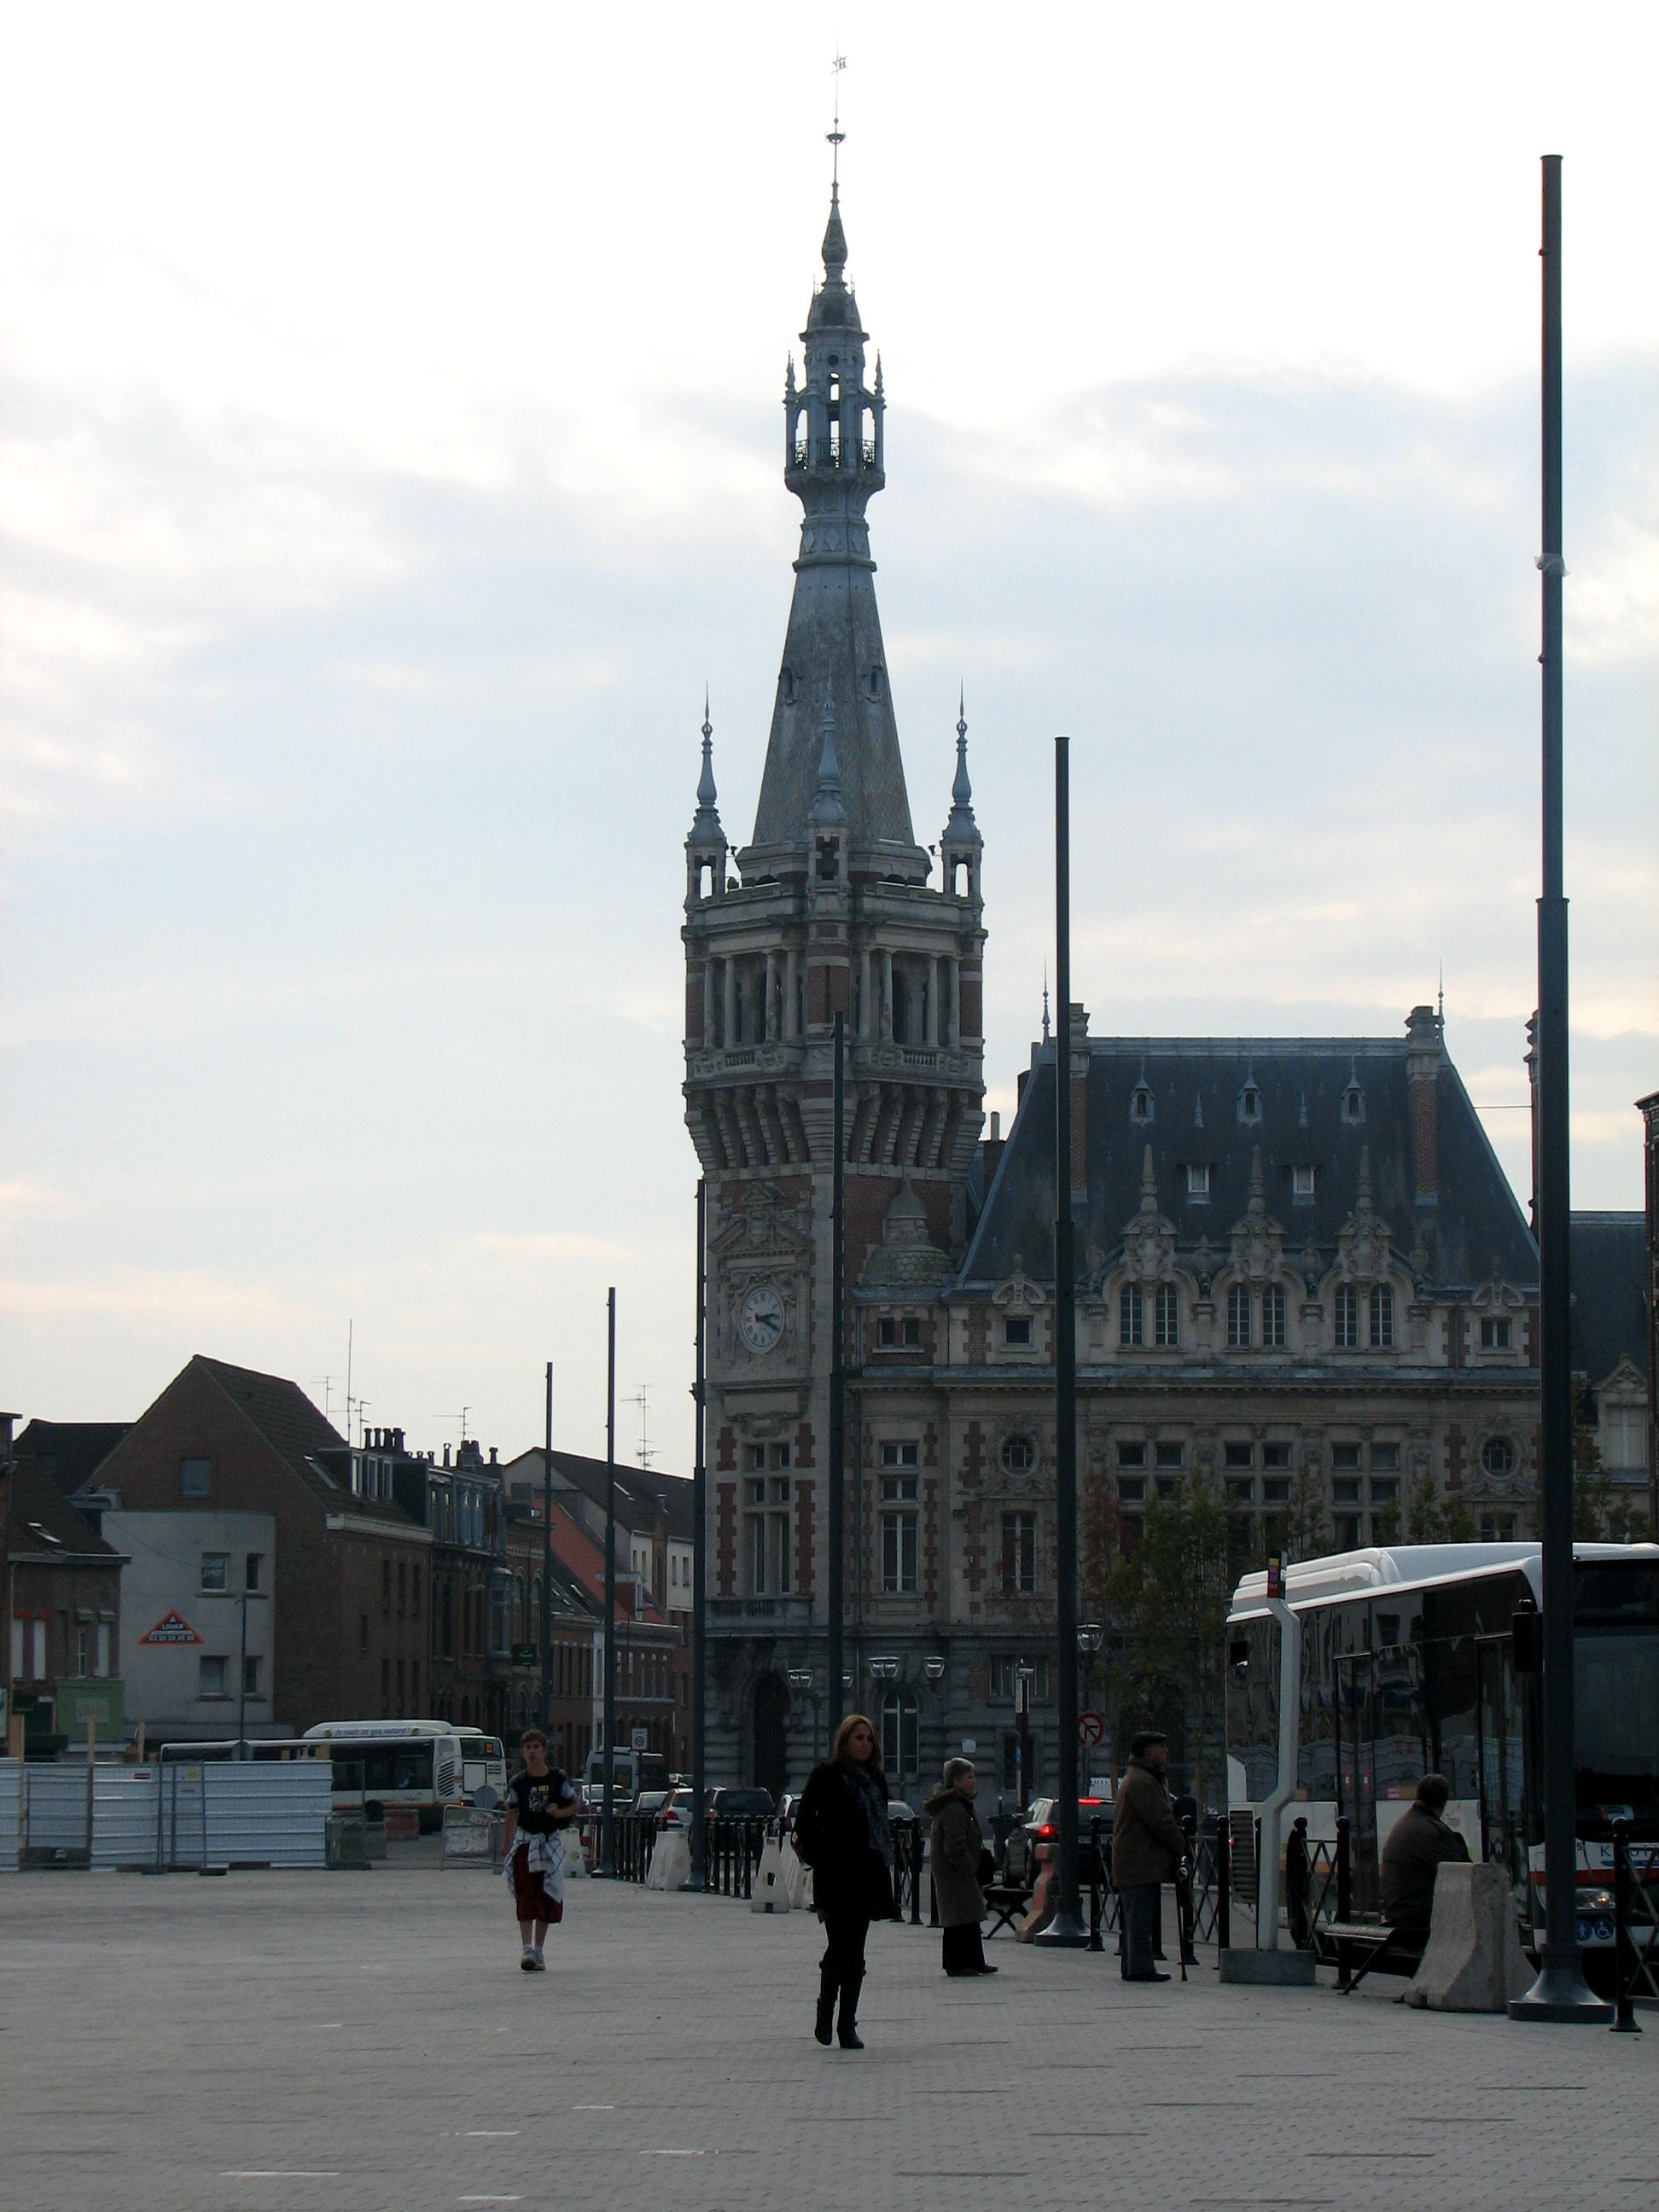 City in Tourcoing